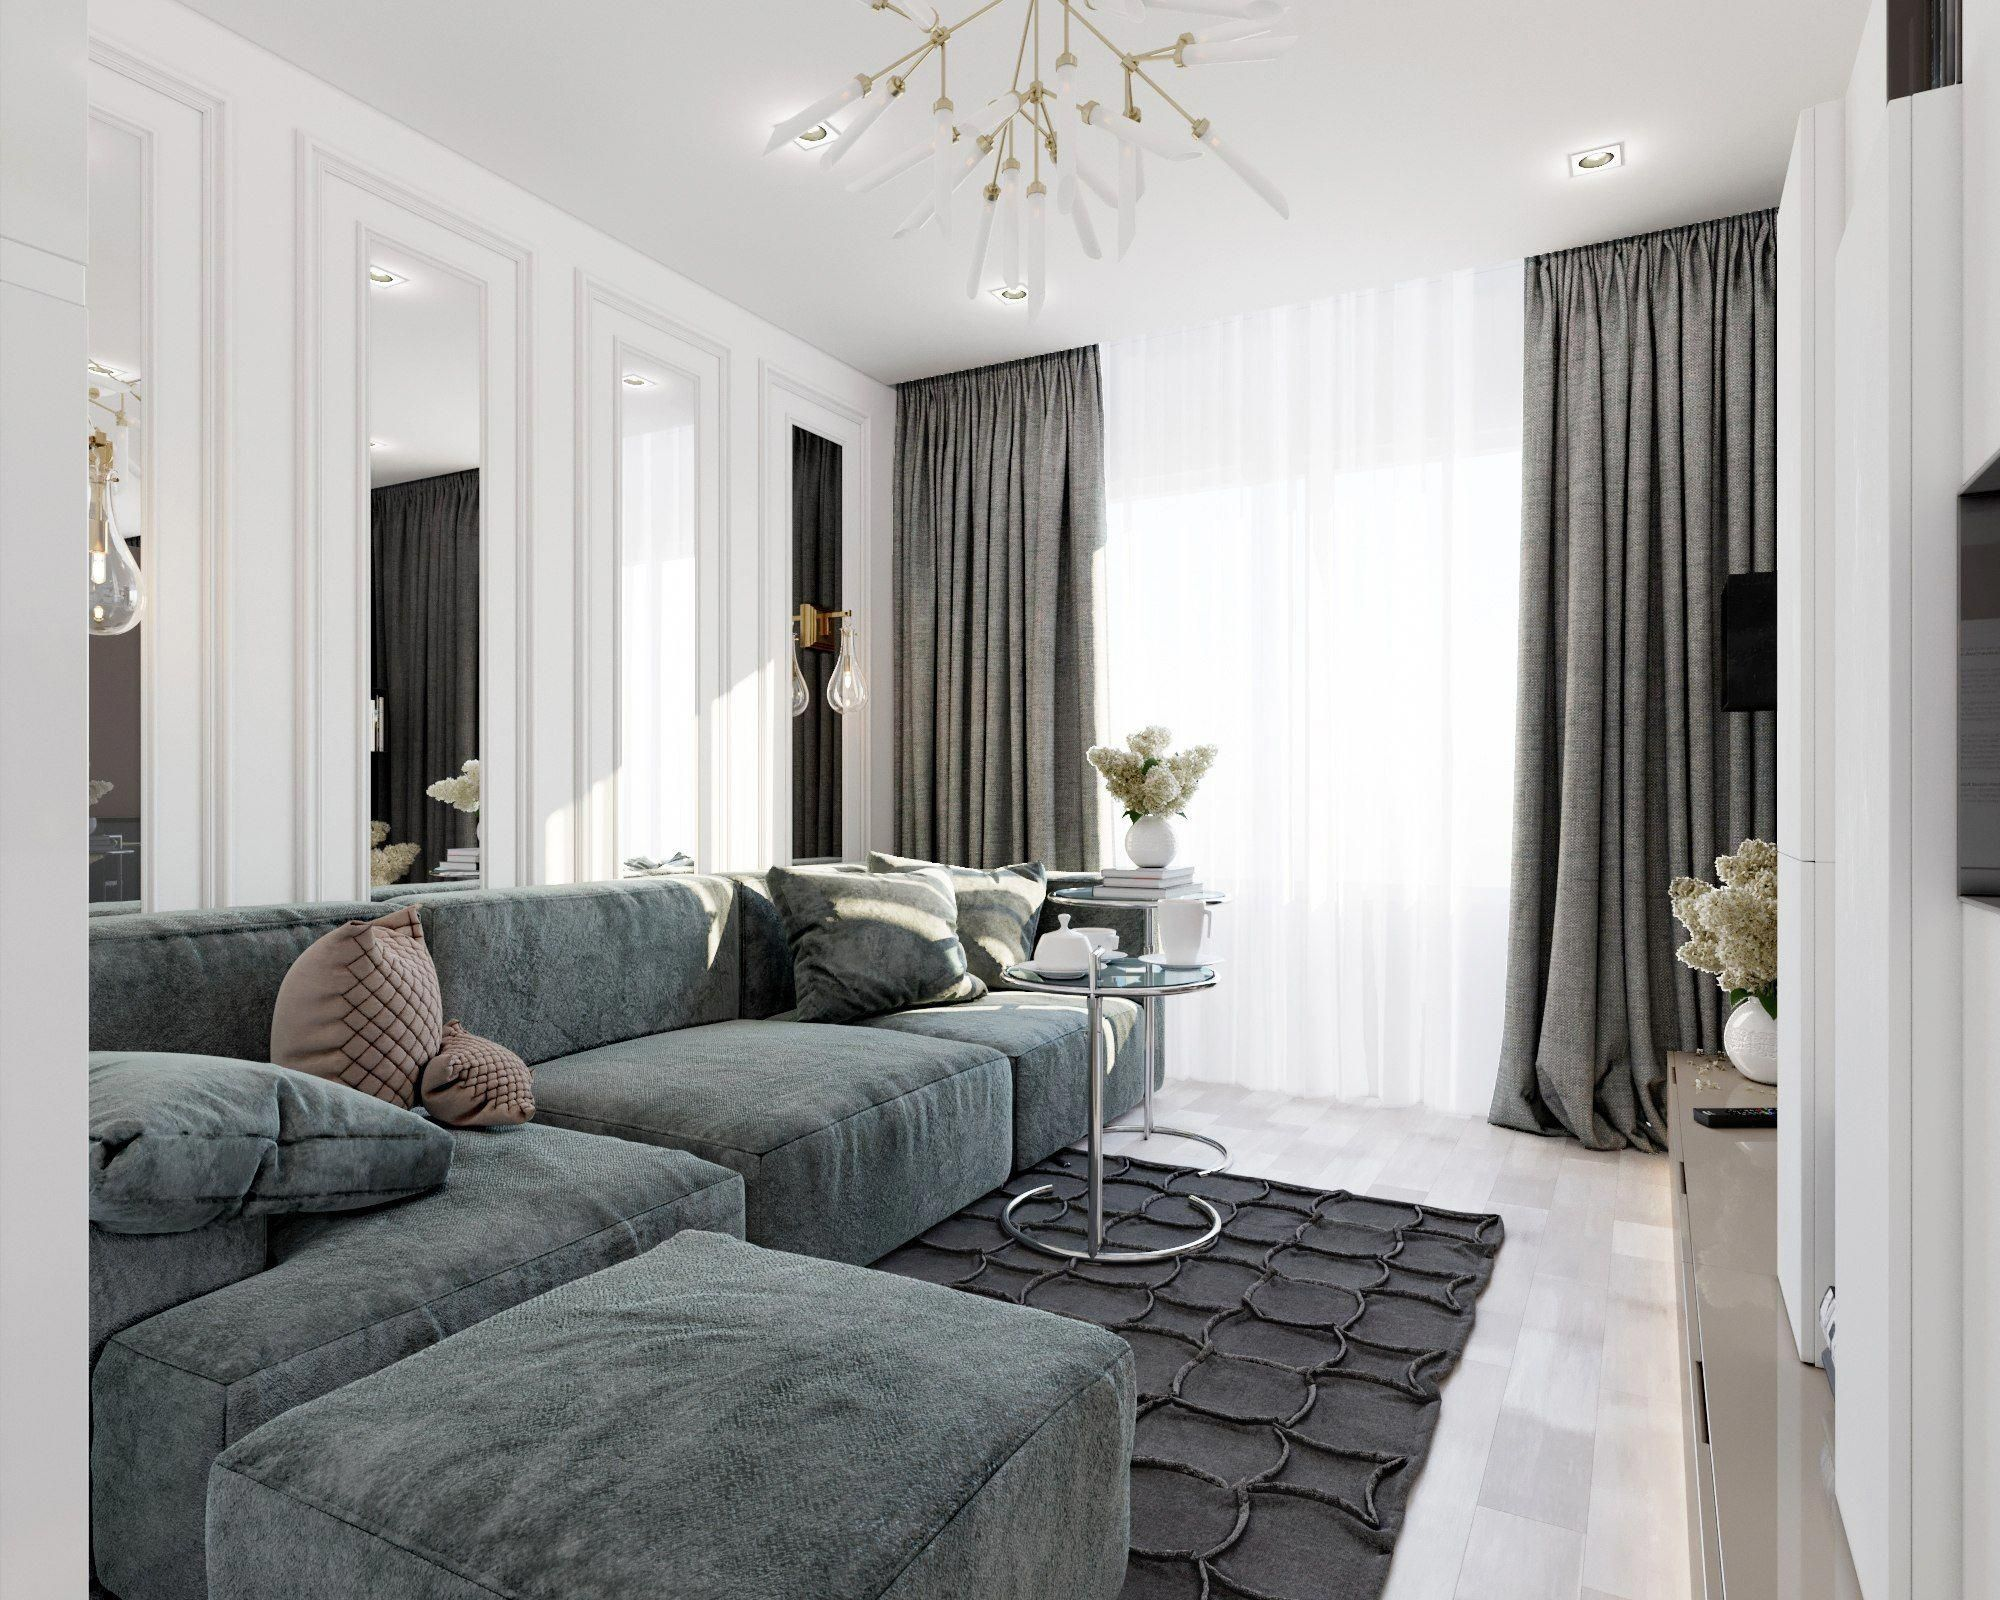 Room Techniques And Strategies For Contemporary Interior Design